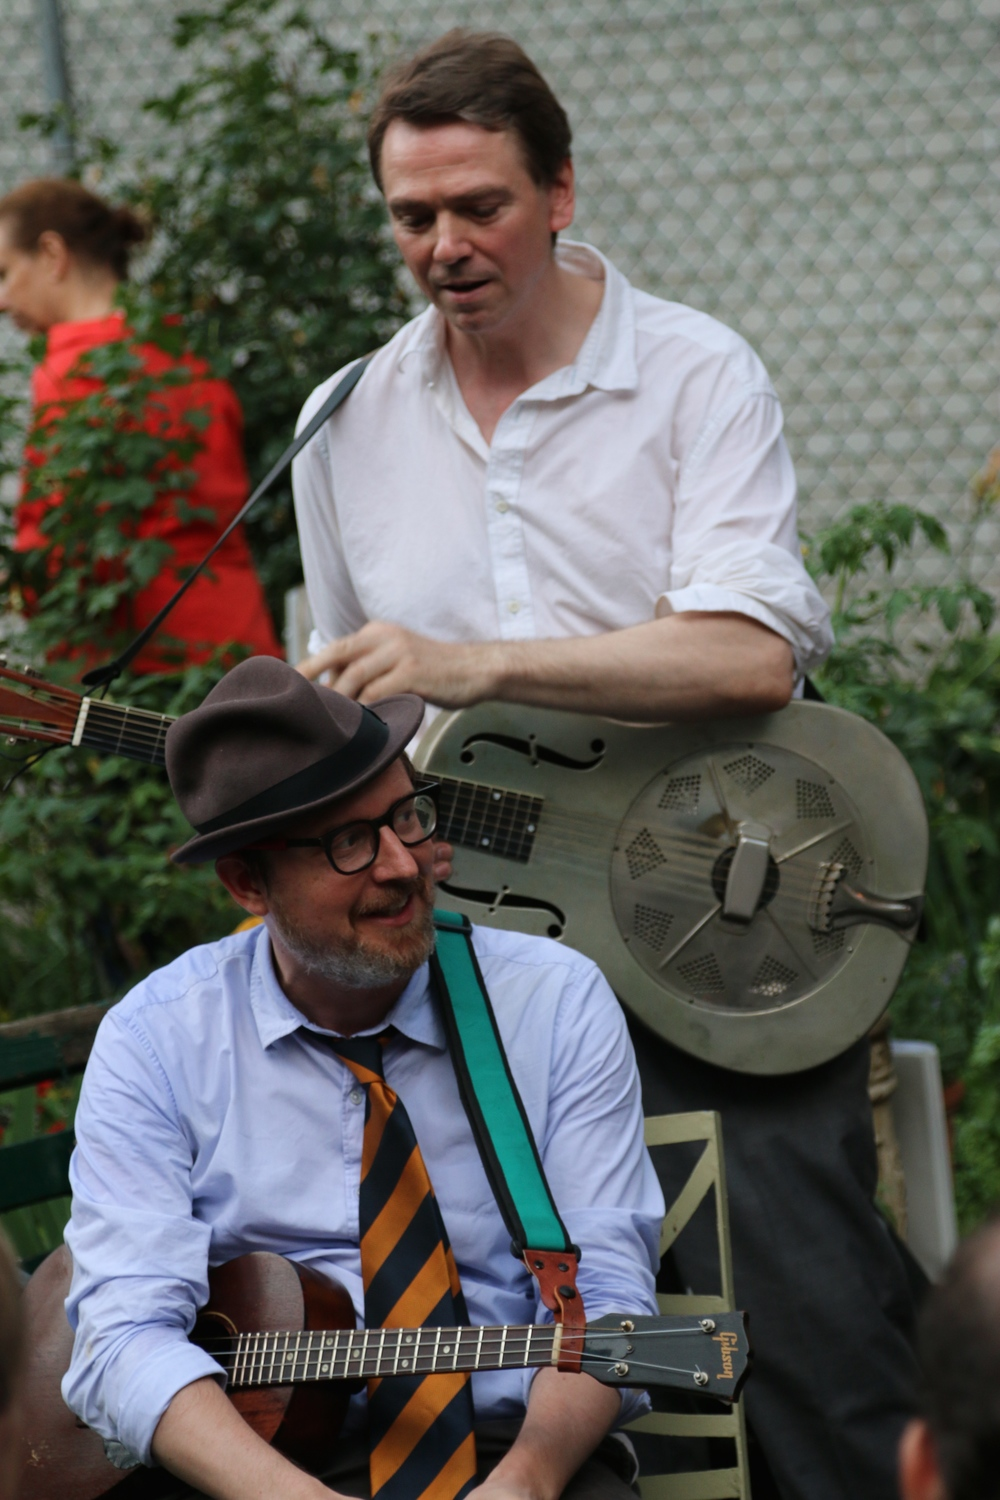 Angus and Carl at Make Music New York, La Guardia Community Garden, June 2015